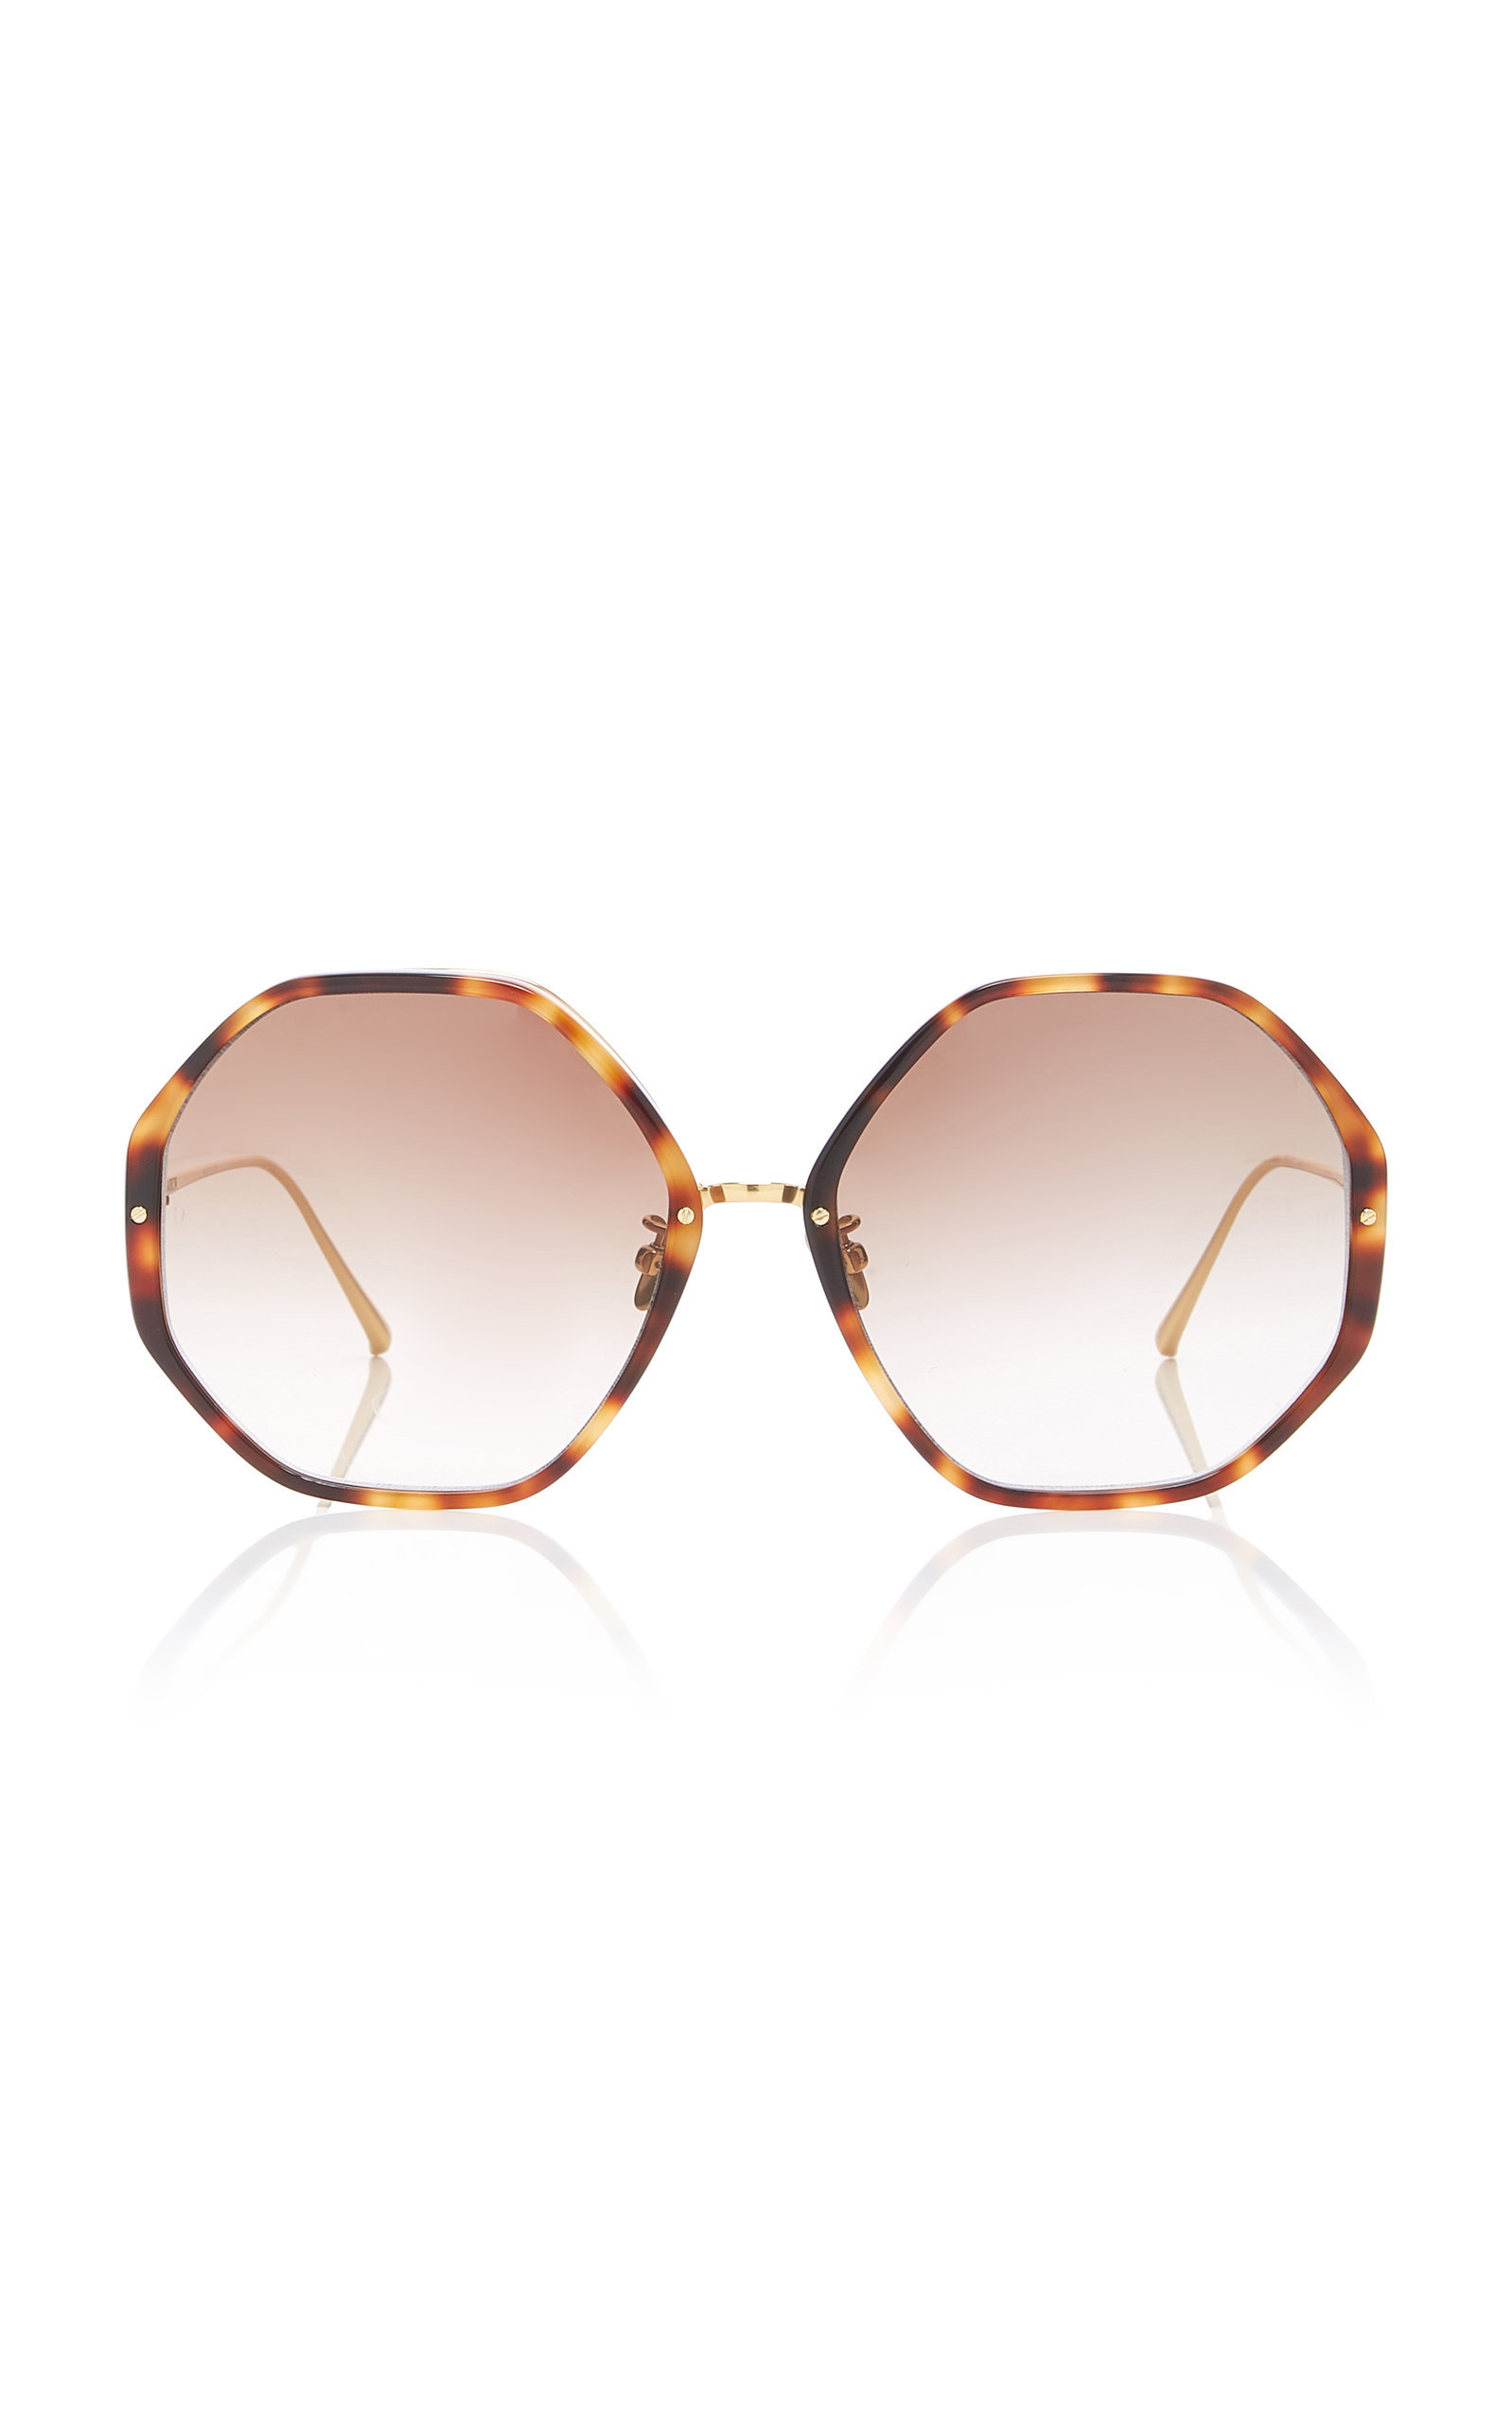 db7e652b46 Linda FarrowCat-Eye Tortoiseshell Acetate And Titanium Sunglasses. CLOSE.  Loading